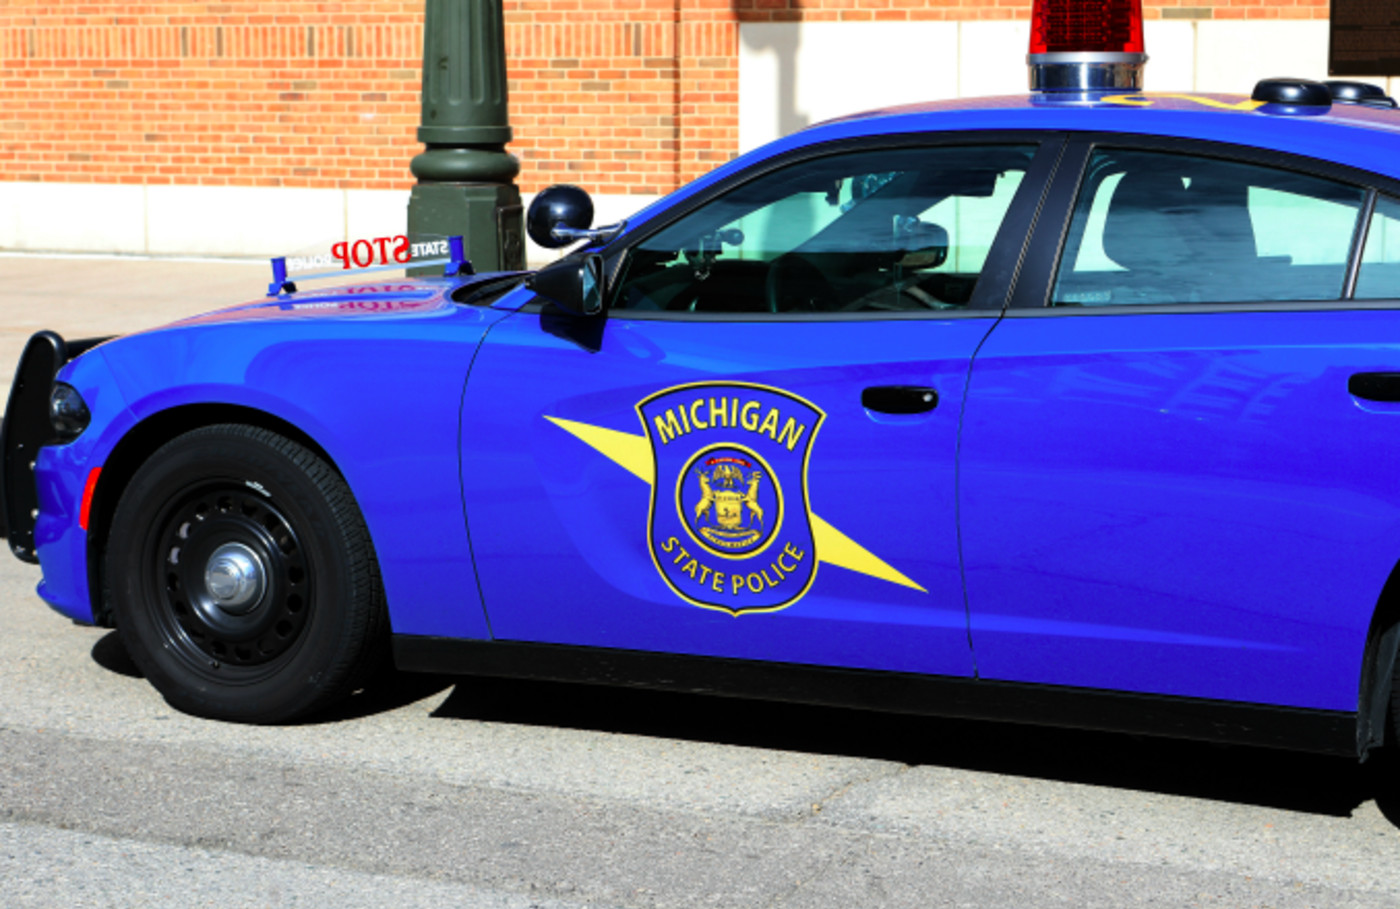 Michigan State Police vehicle sits parked outside Comerica Park in Detroit